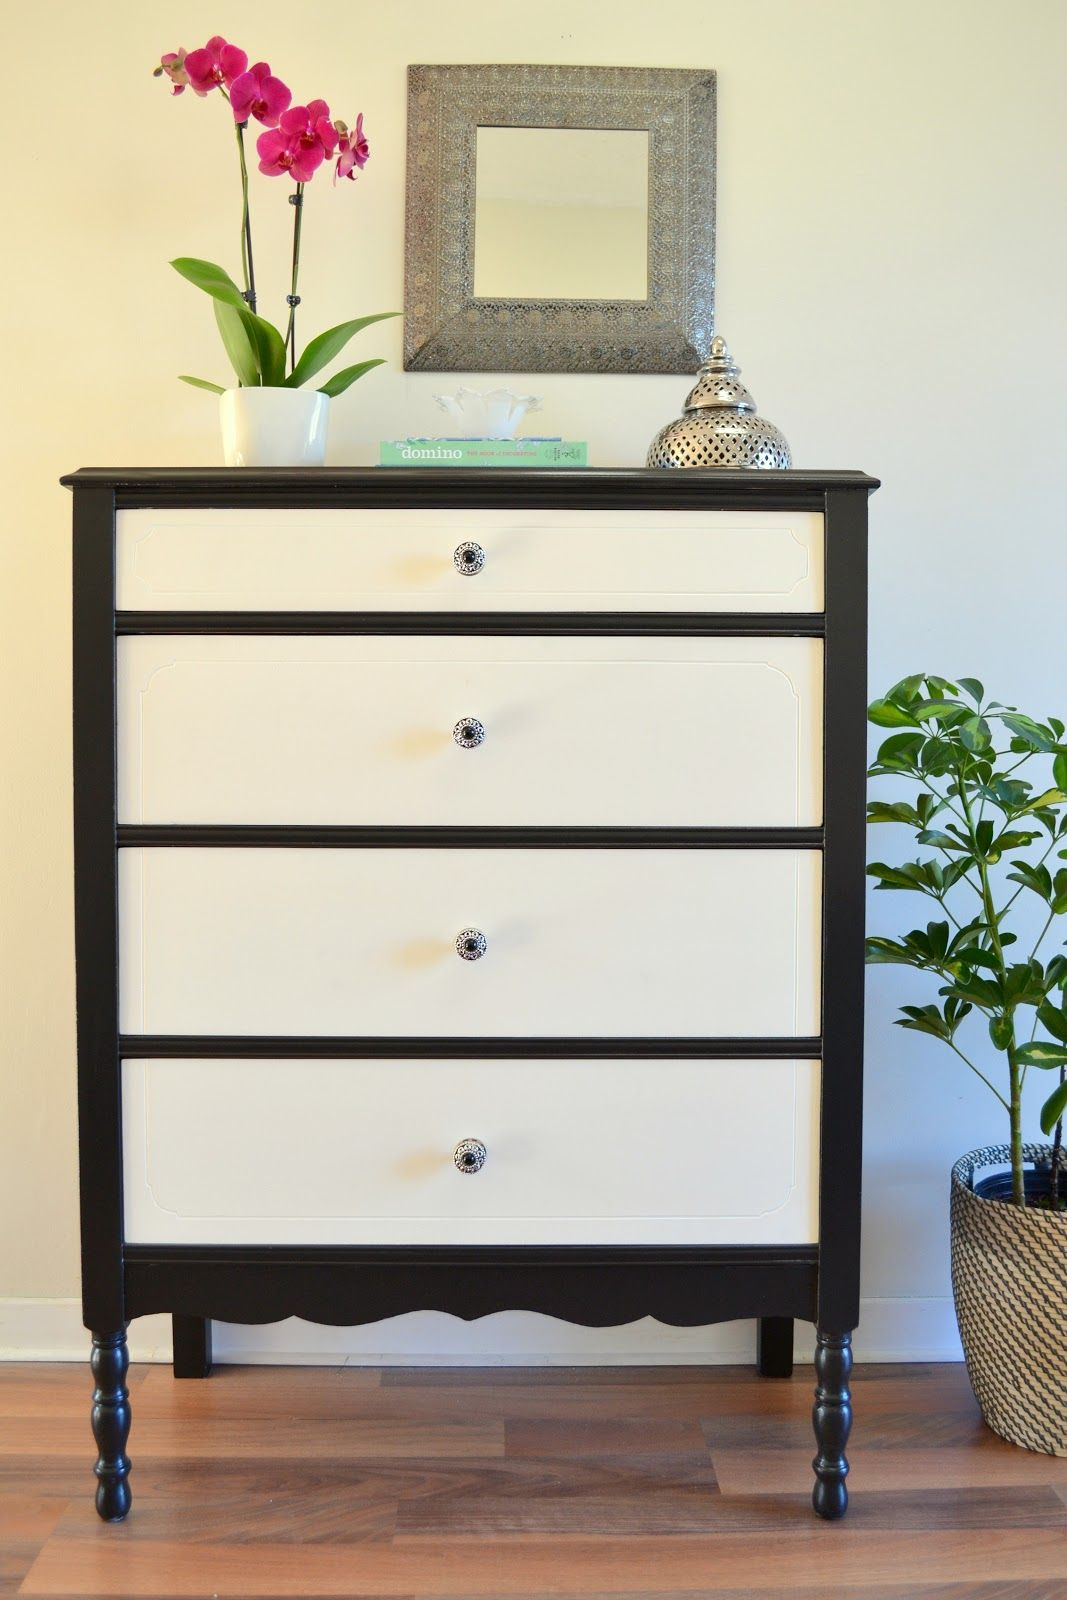 West Furniture Revival Revival Monday 89 Black And White Furniture White Painted Furniture Black And White Dresser